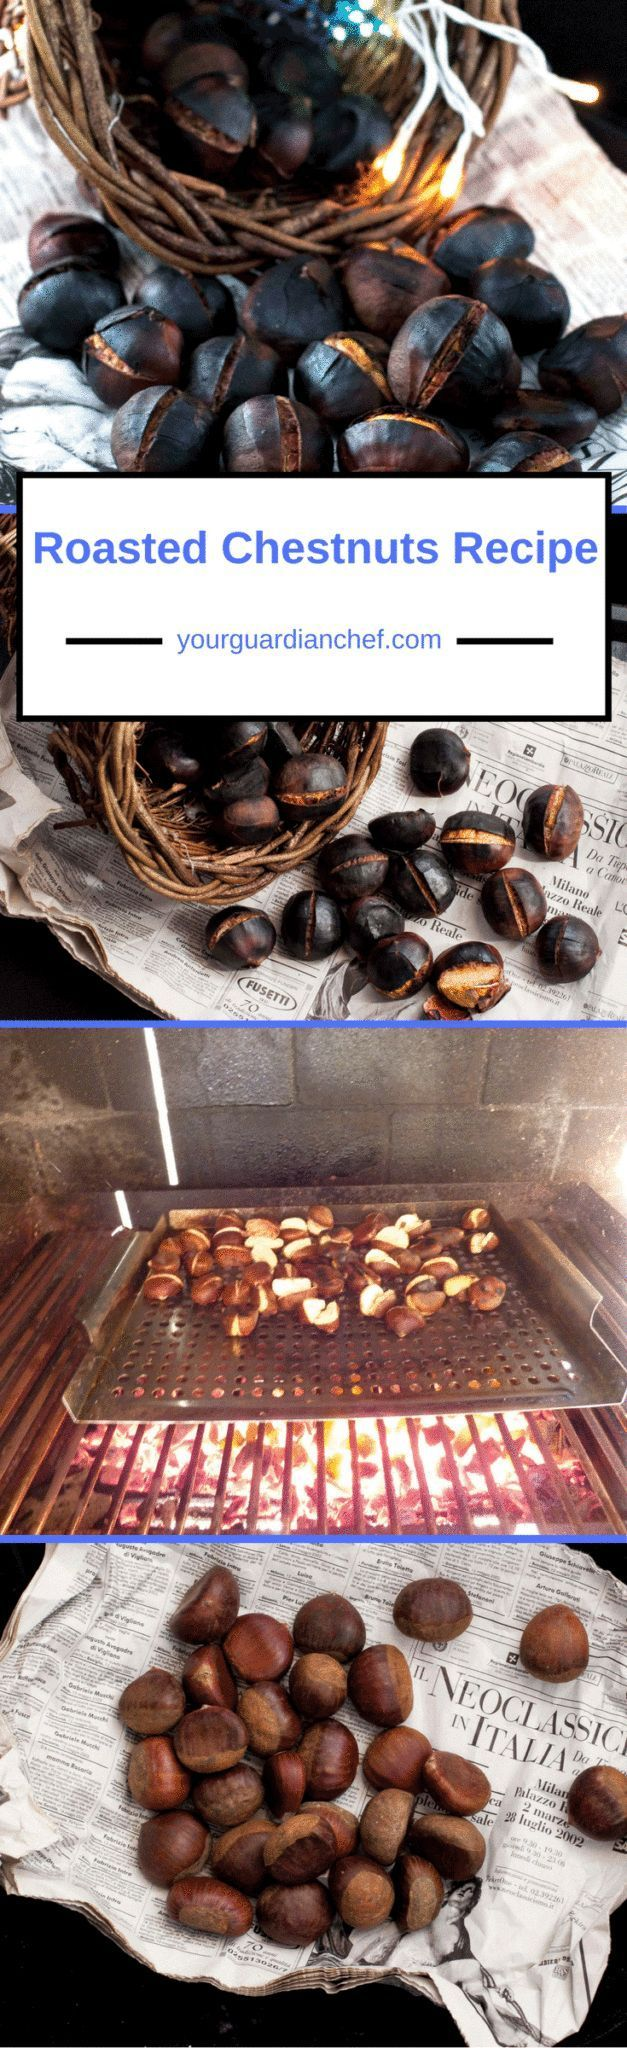 I like to celebrate Autumn with a Roasted Chestnuts Recipe as they have been my Autumn delight since I was young: roasted, boiled, savory and desserts - Your Guardian Chef #chestnuts #marrons #castagne